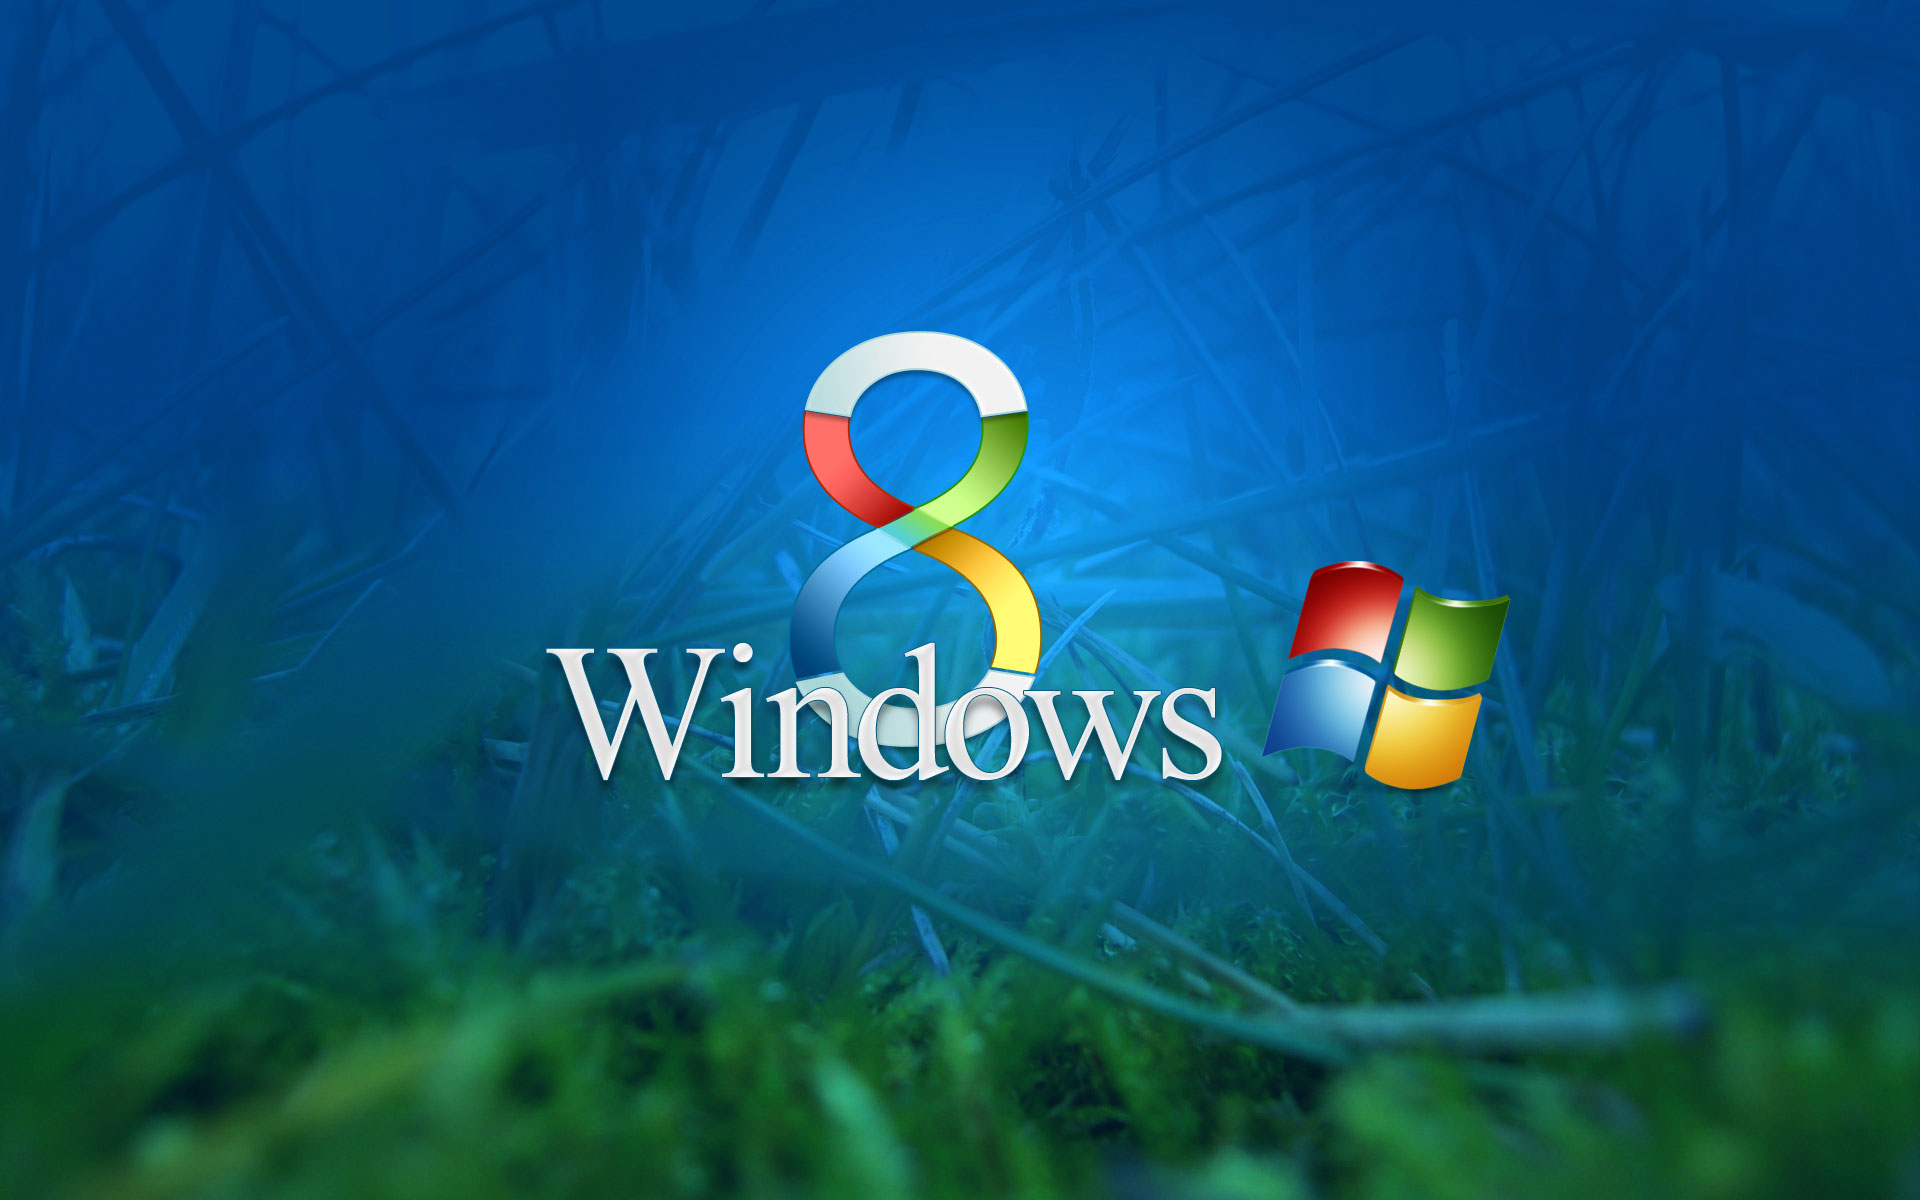 Come si cambia lingua su Windows 8